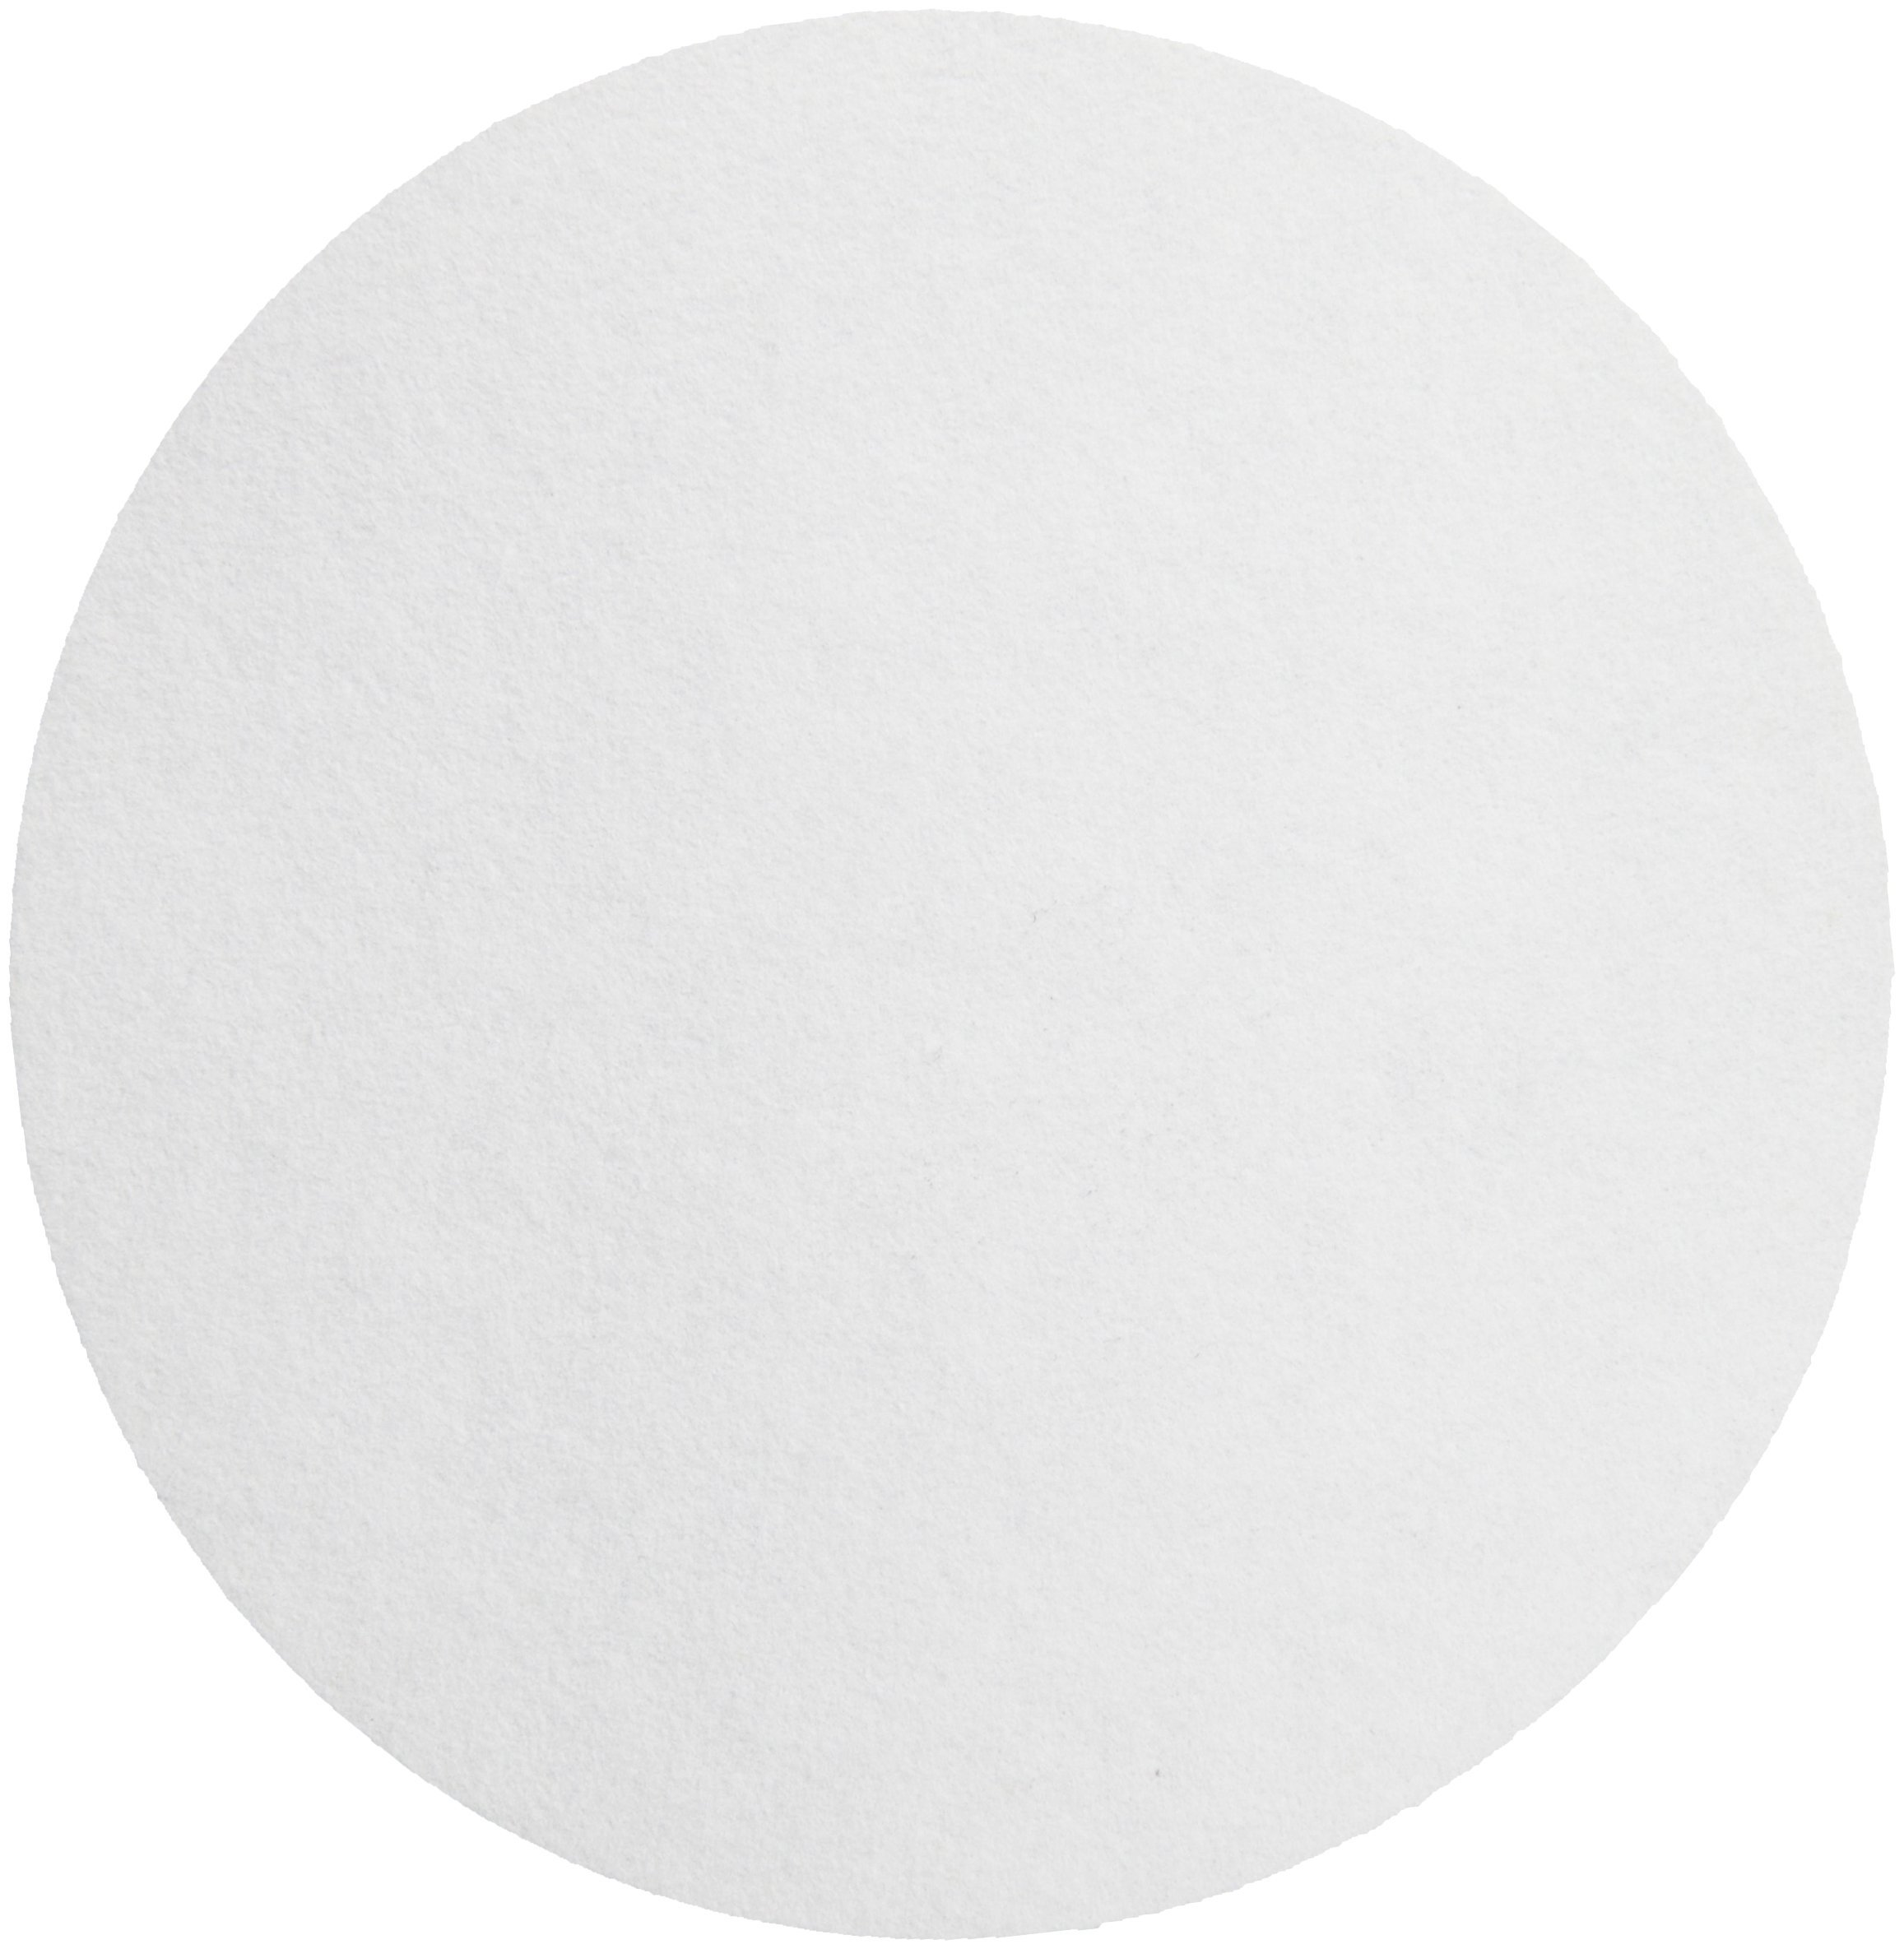 Whatman 1540-055 Hardened Ashless Quantitative Filter Paper, 5.5cm Diameter, 8 Micron, Grade 540 (Pack of 100) by Whatman